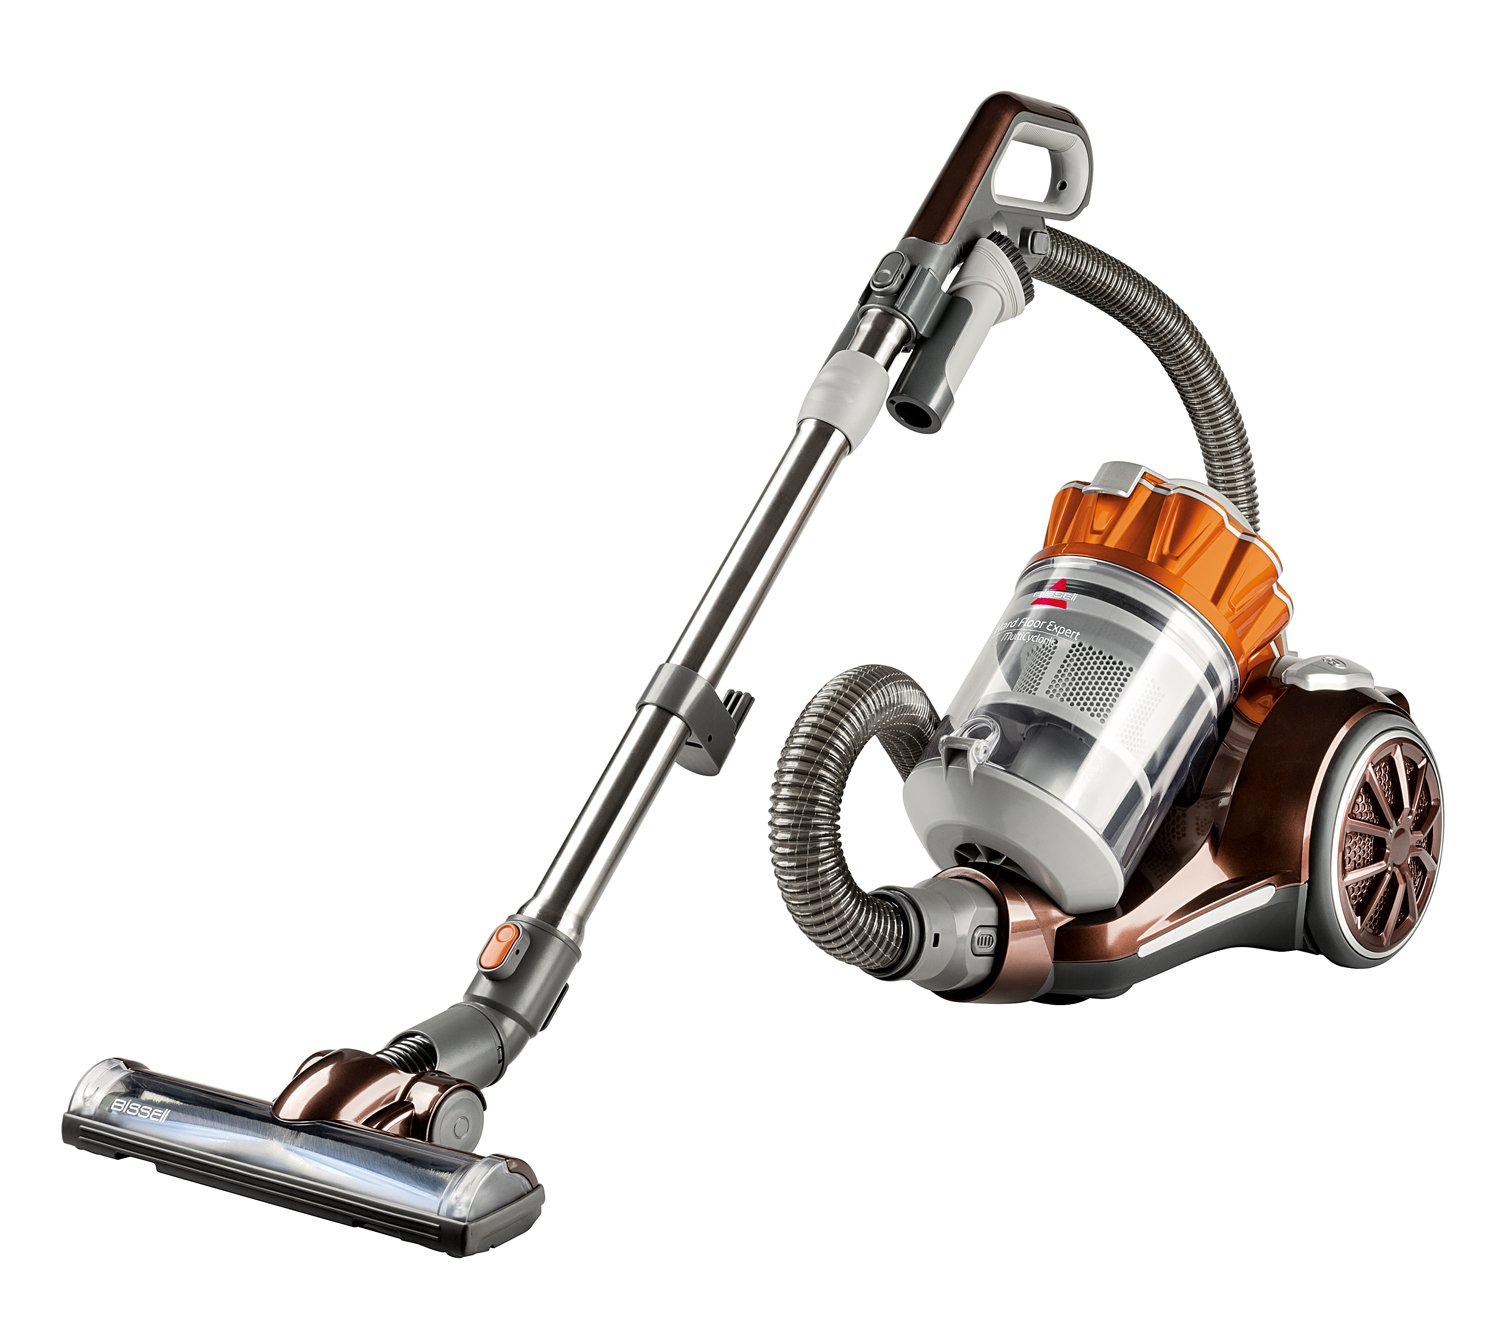 Shark Canister Vacuum: The Best Vacuum Choice You Can Make